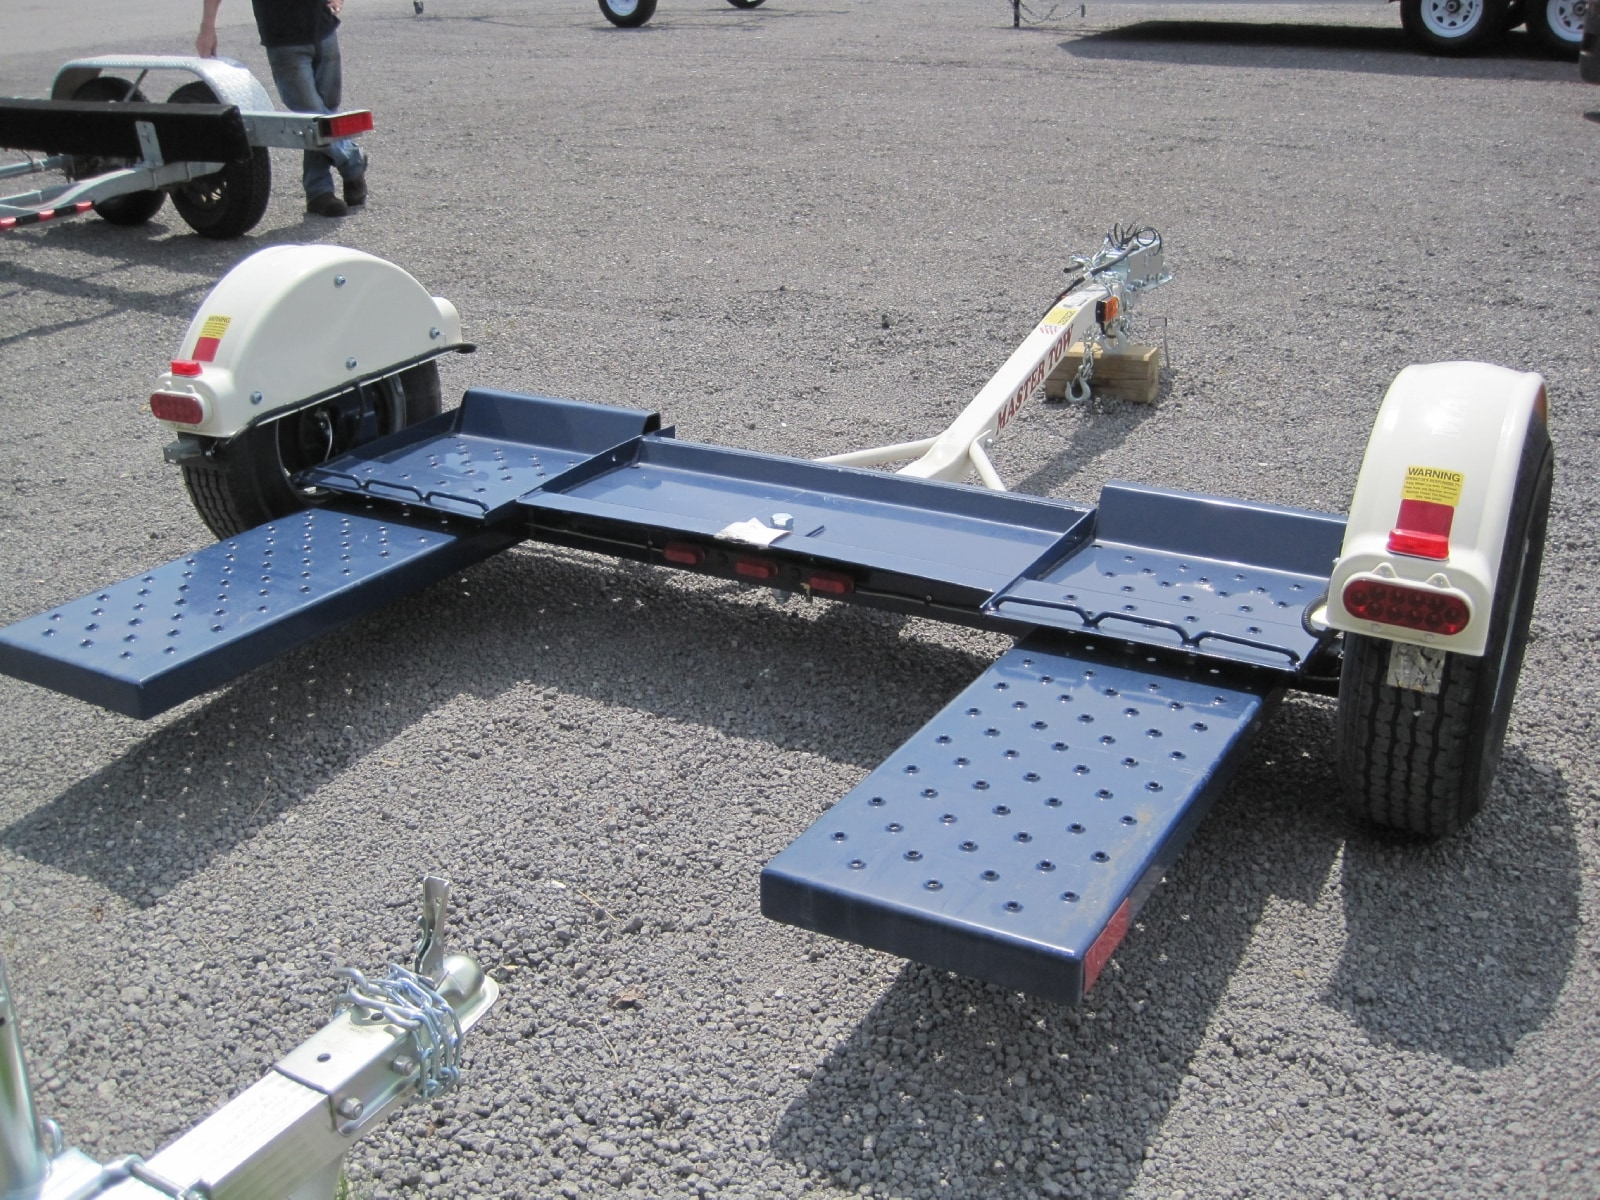 master tow dolly wiring diagram car dolly wiring diagram light master tow dolly wiring diagrams - somurich.com #4